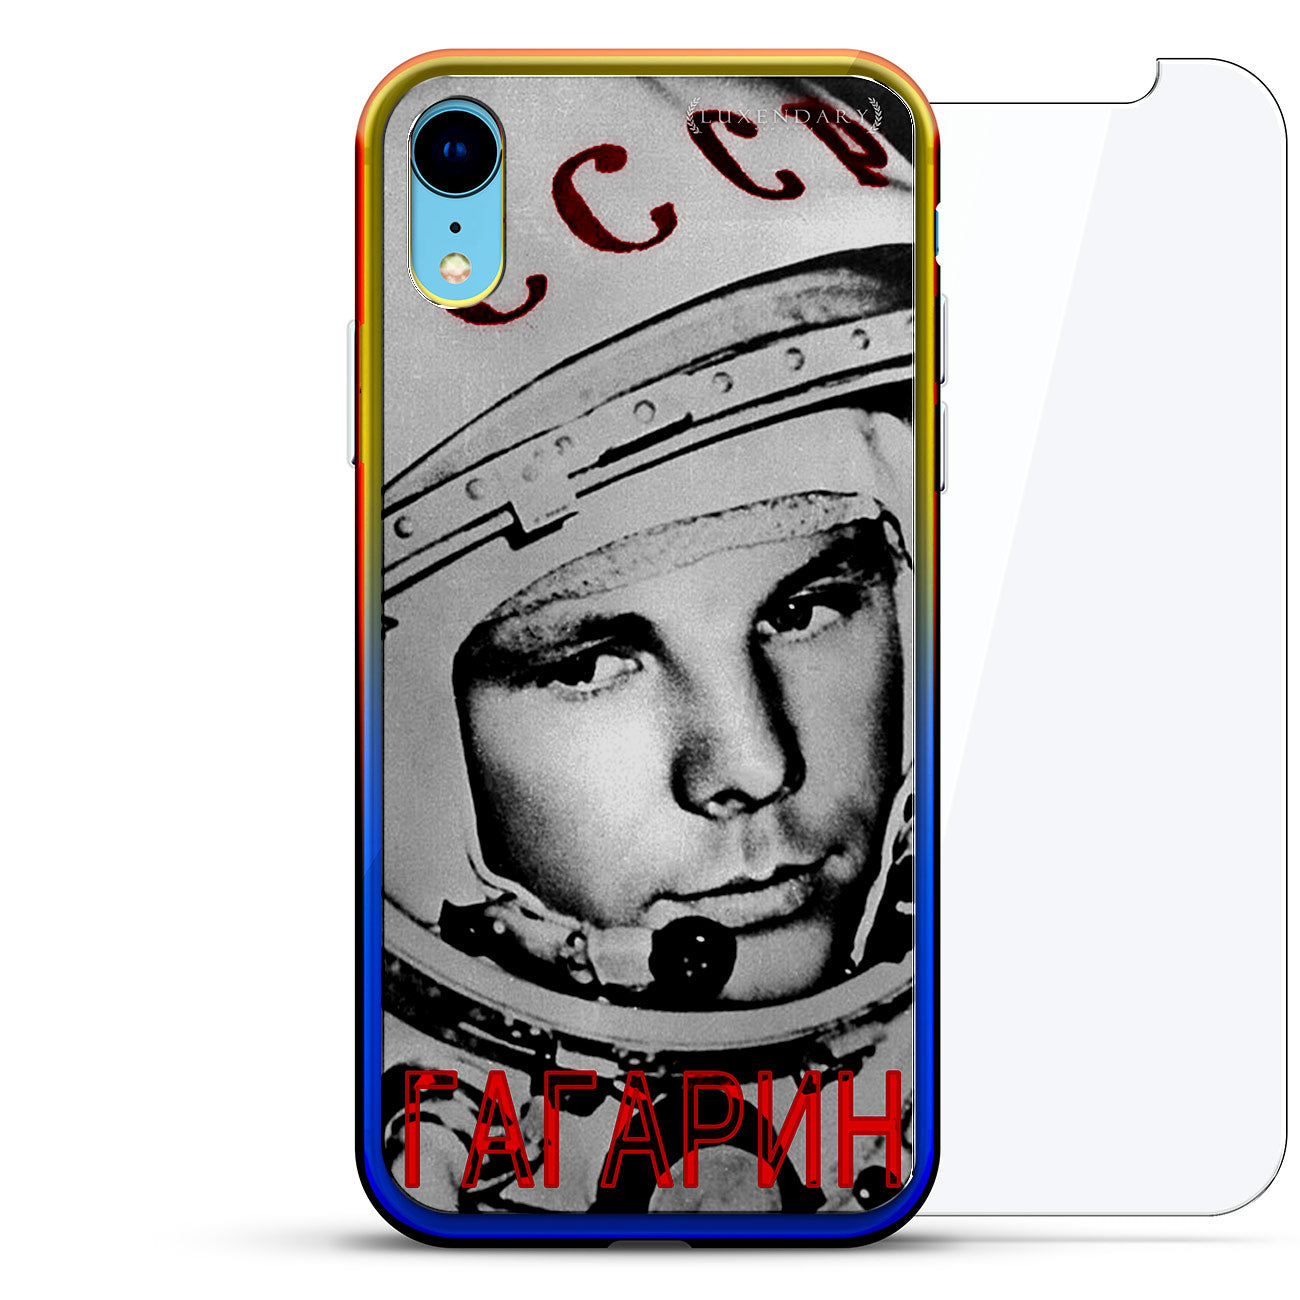 SPACE: GAGARIN